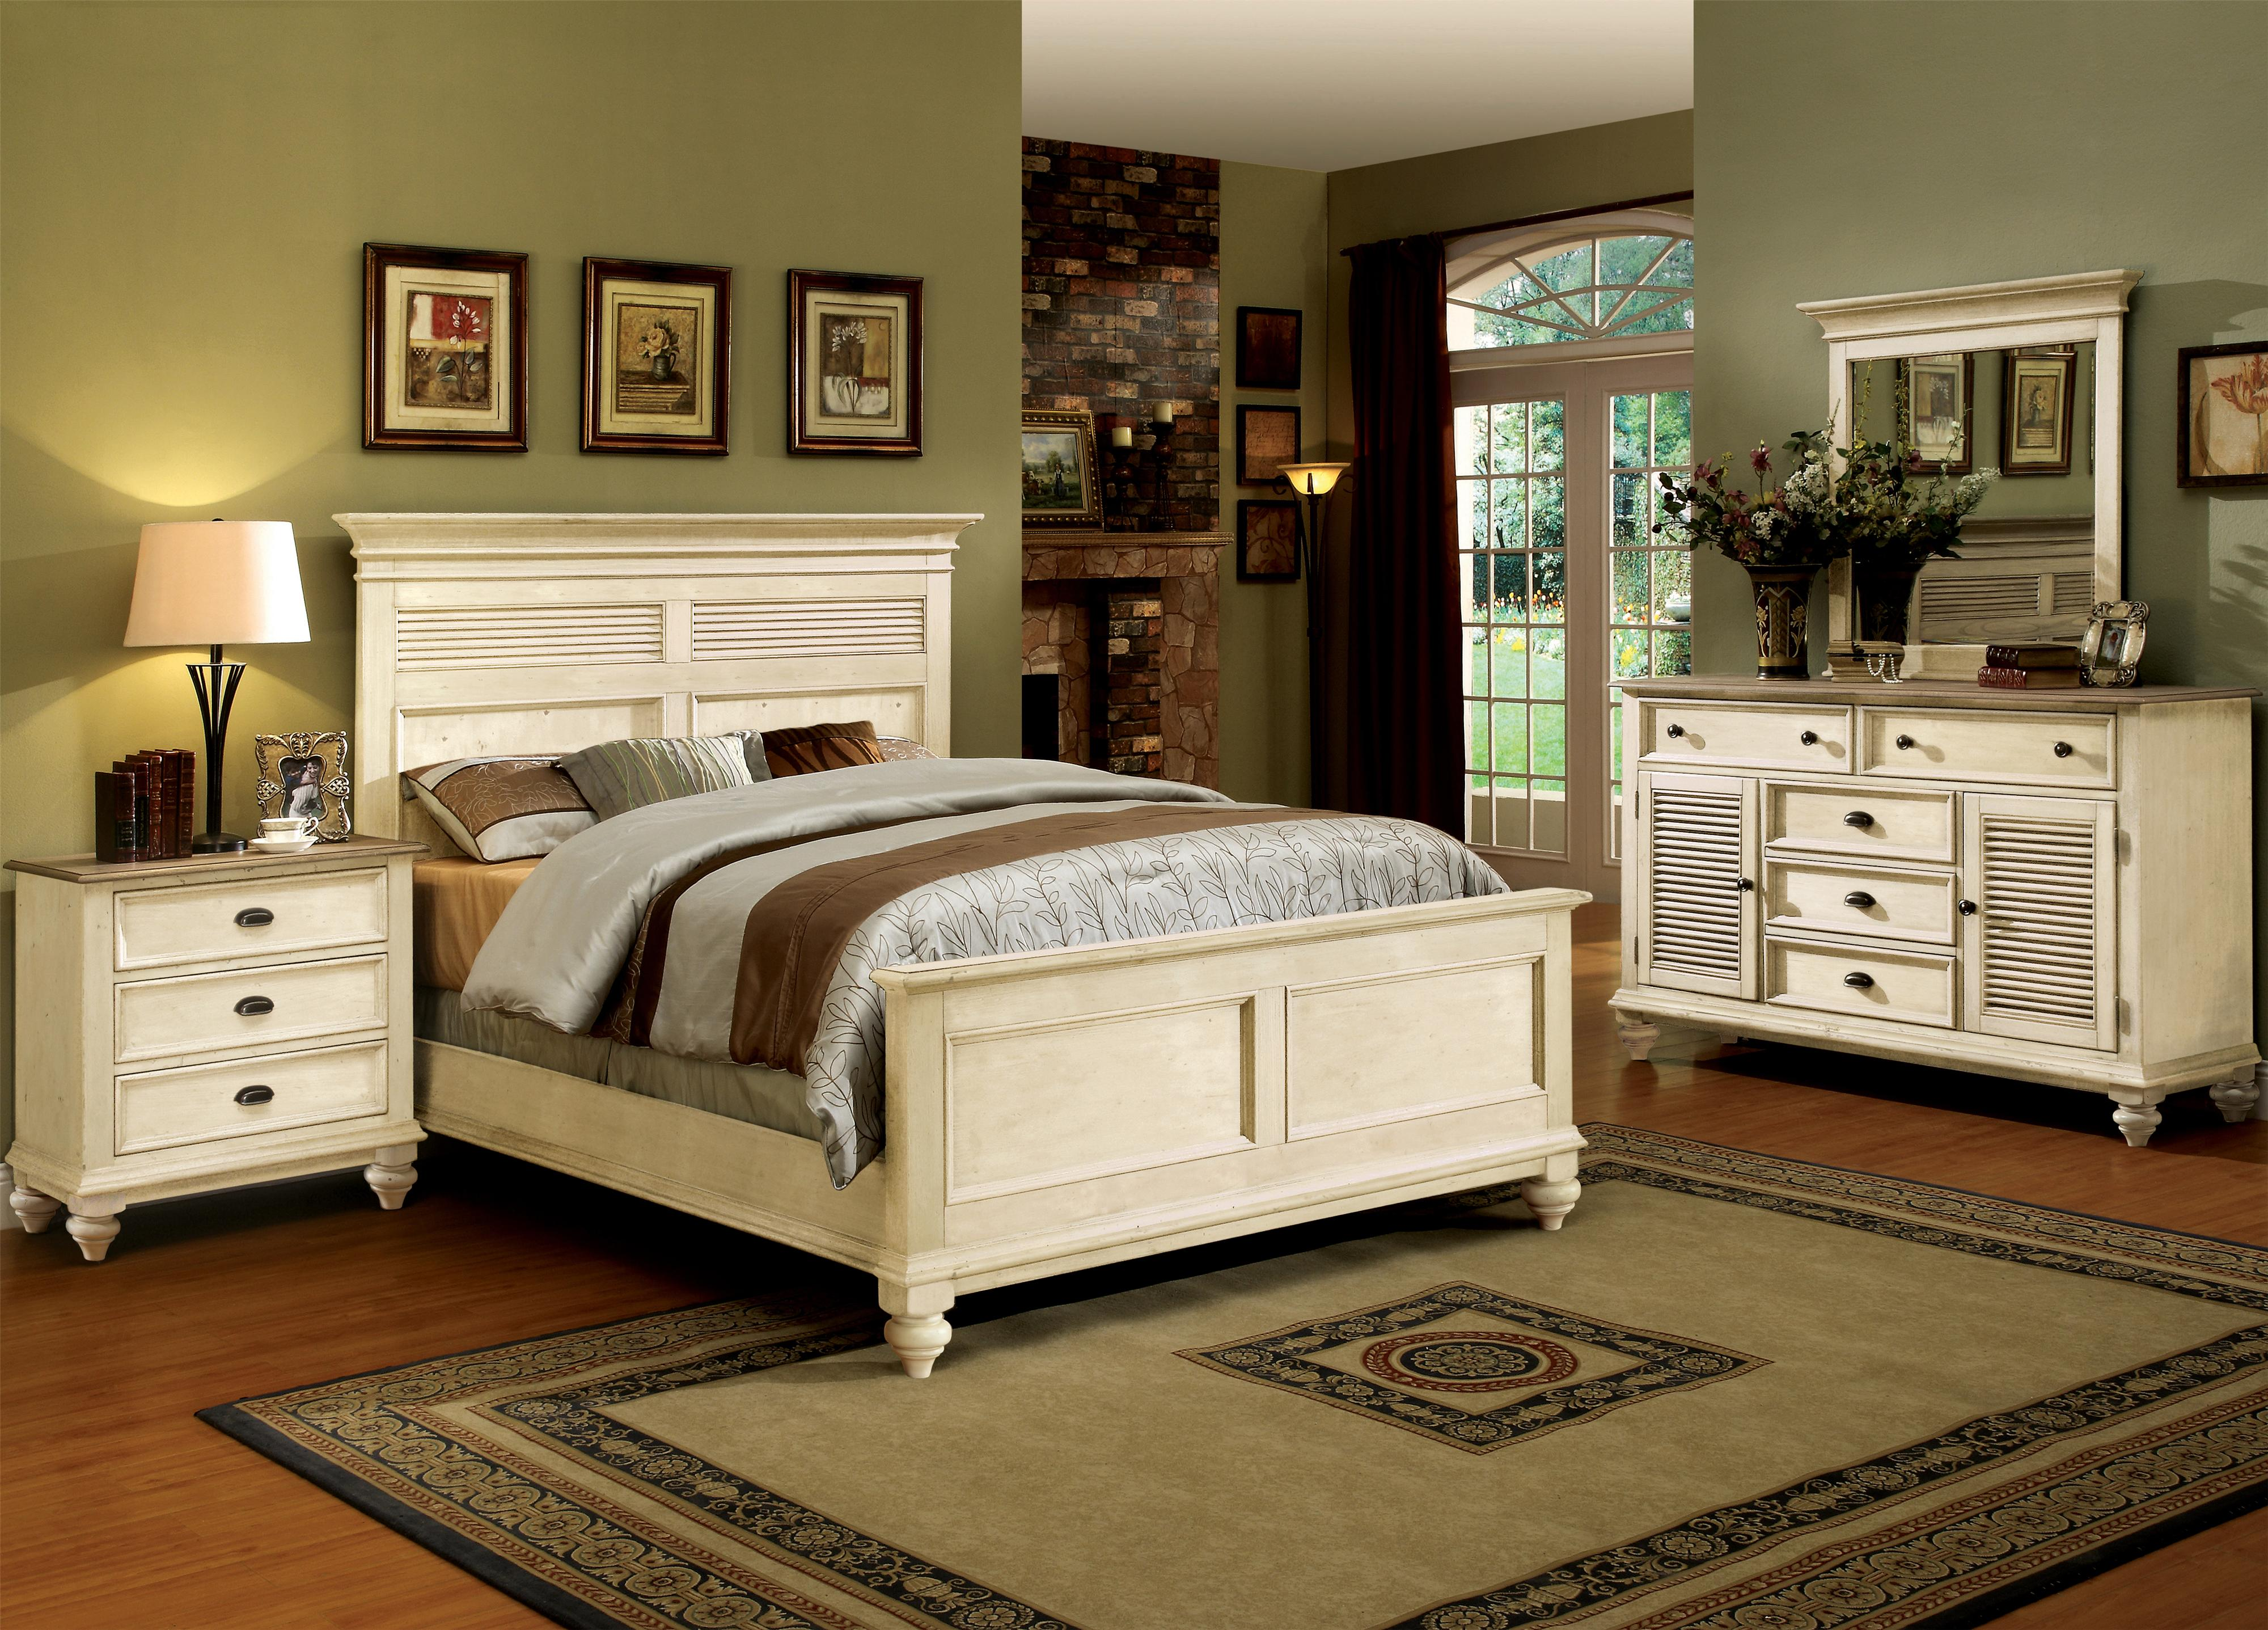 Riverside Furniture Coventry Two Tone Full/Queen Bedroom Group - Item Number: 32500 F Q Bedroom Group 22